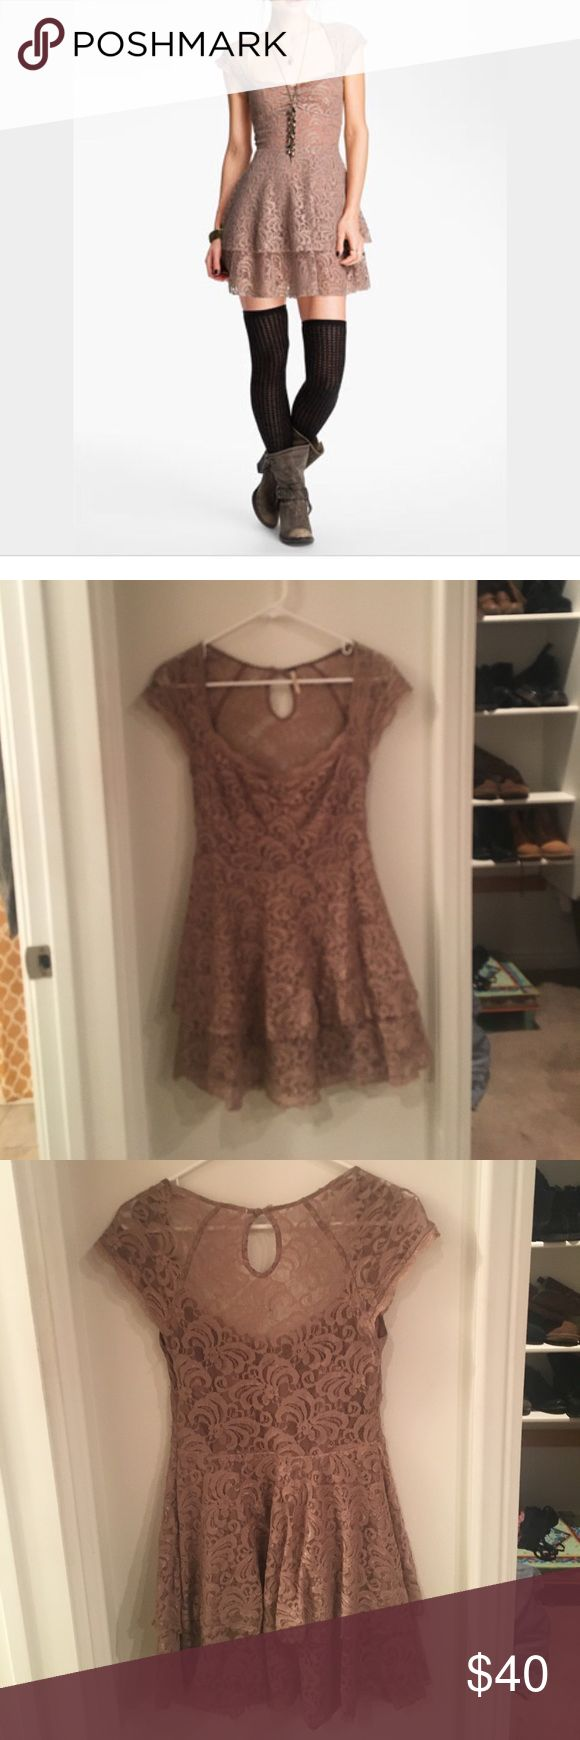 Free People Lace Dress Free People Lace Peephole dress. Gently used has some wear but in good condition. Free People Dresses Mini